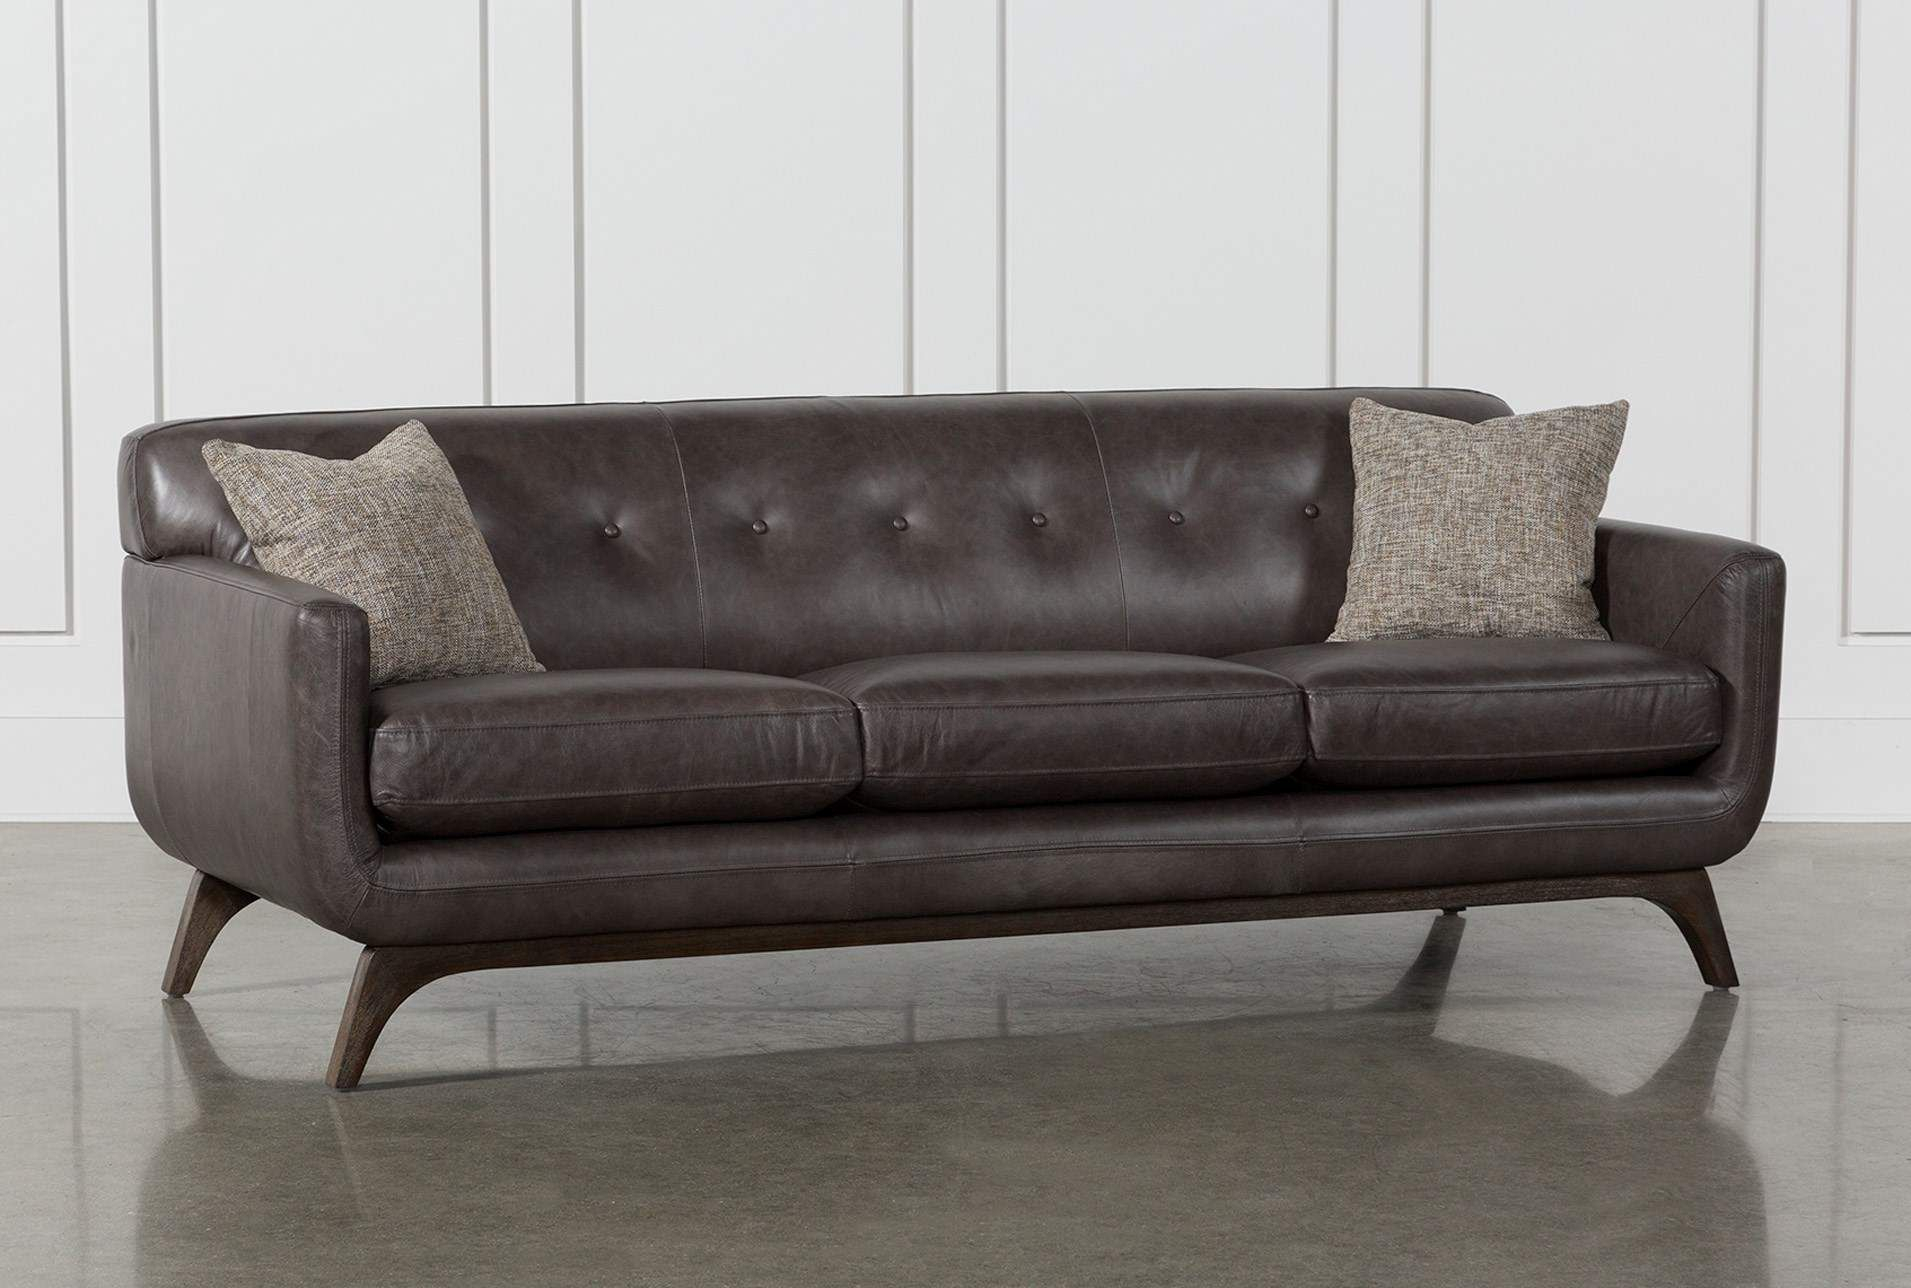 Cosette Leather Sofa In 2018 | Parkview | Pinterest | Sofa, Leather Intended For Matteo Arm Sofa Chairs By Nate Berkus And Jeremiah Brent (View 15 of 25)